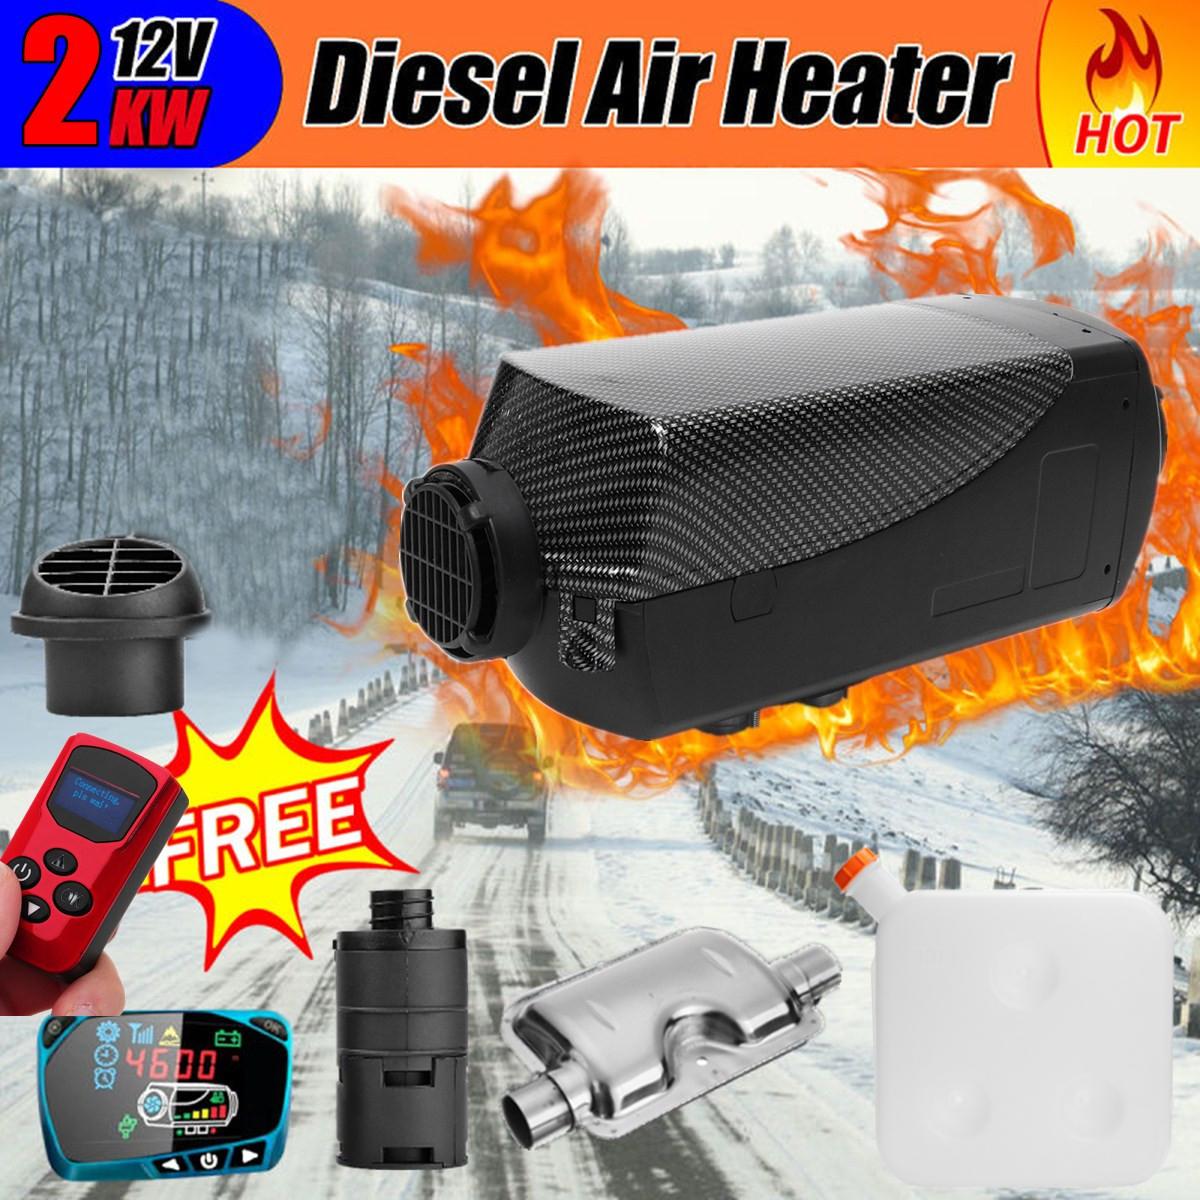 Car Heater 2KW 12V Air Diesels Heater Parking Heater With Remote Control LCD Monitor For RV Motorhome Trailer Trucks Boats